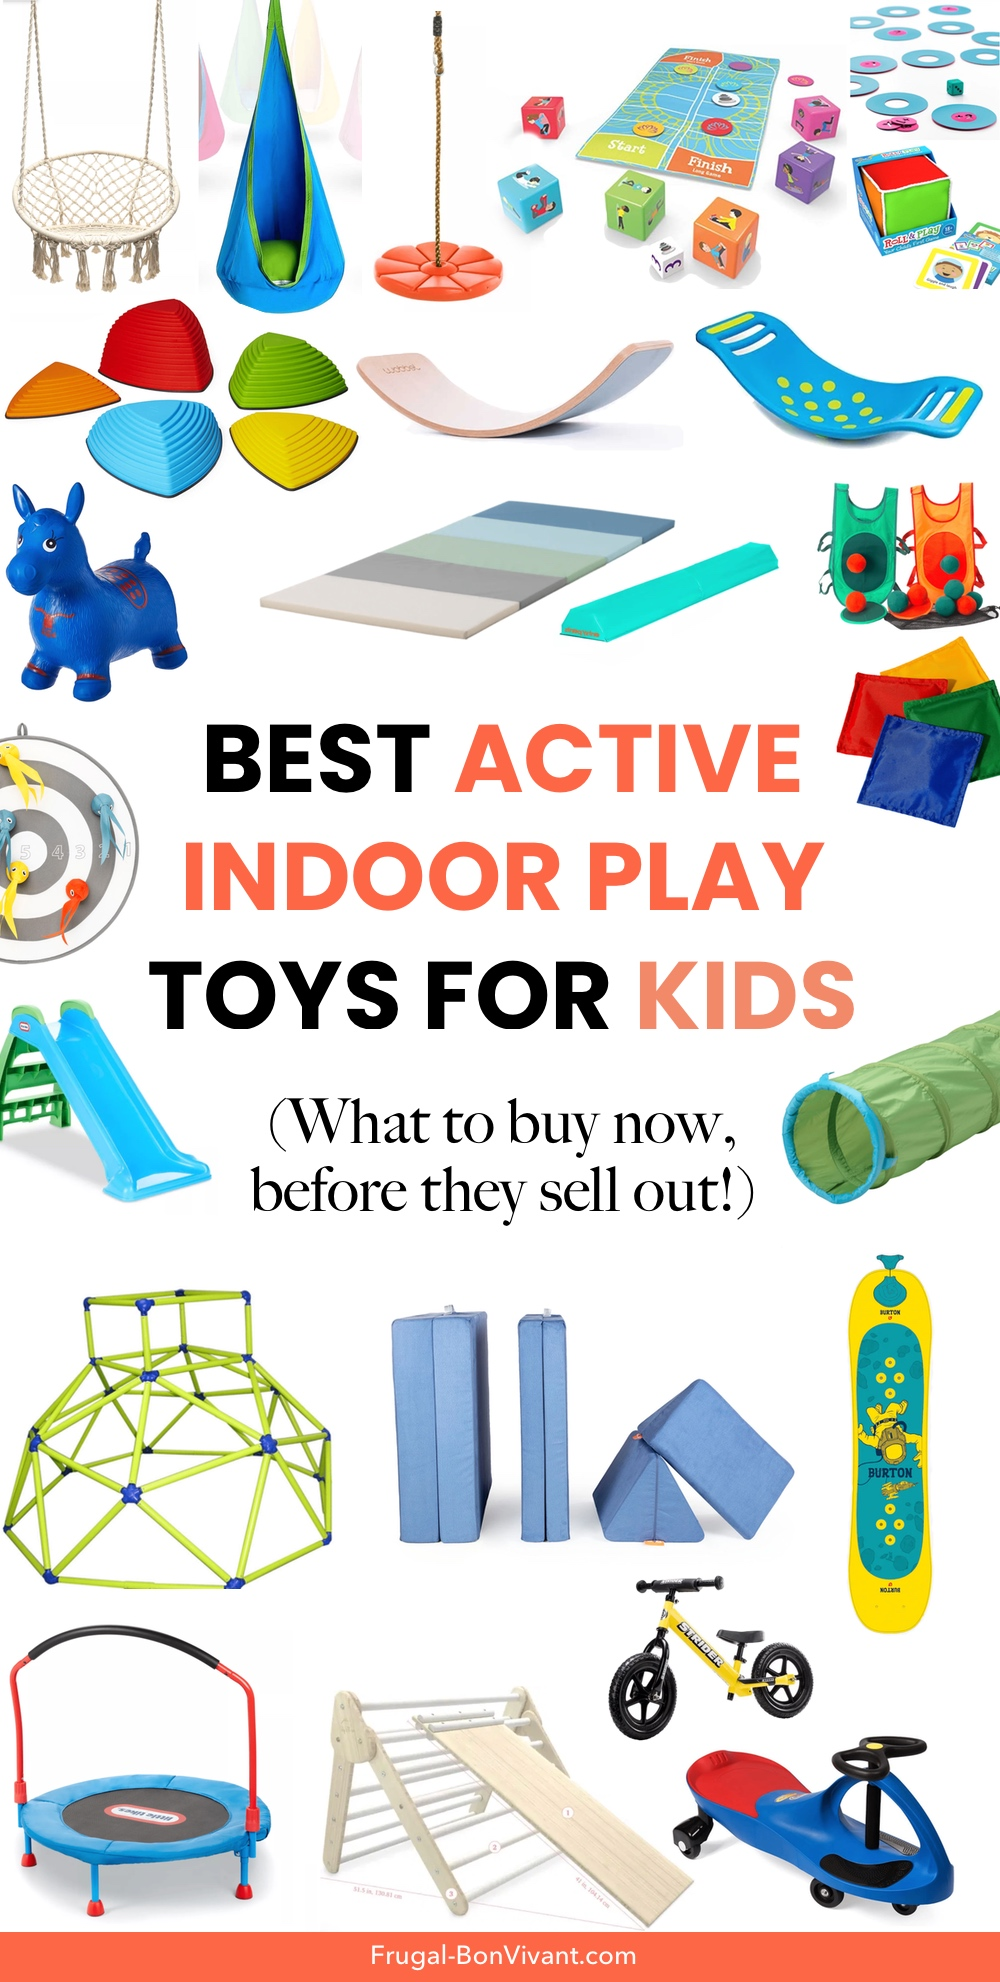 Indoor play toys for kids